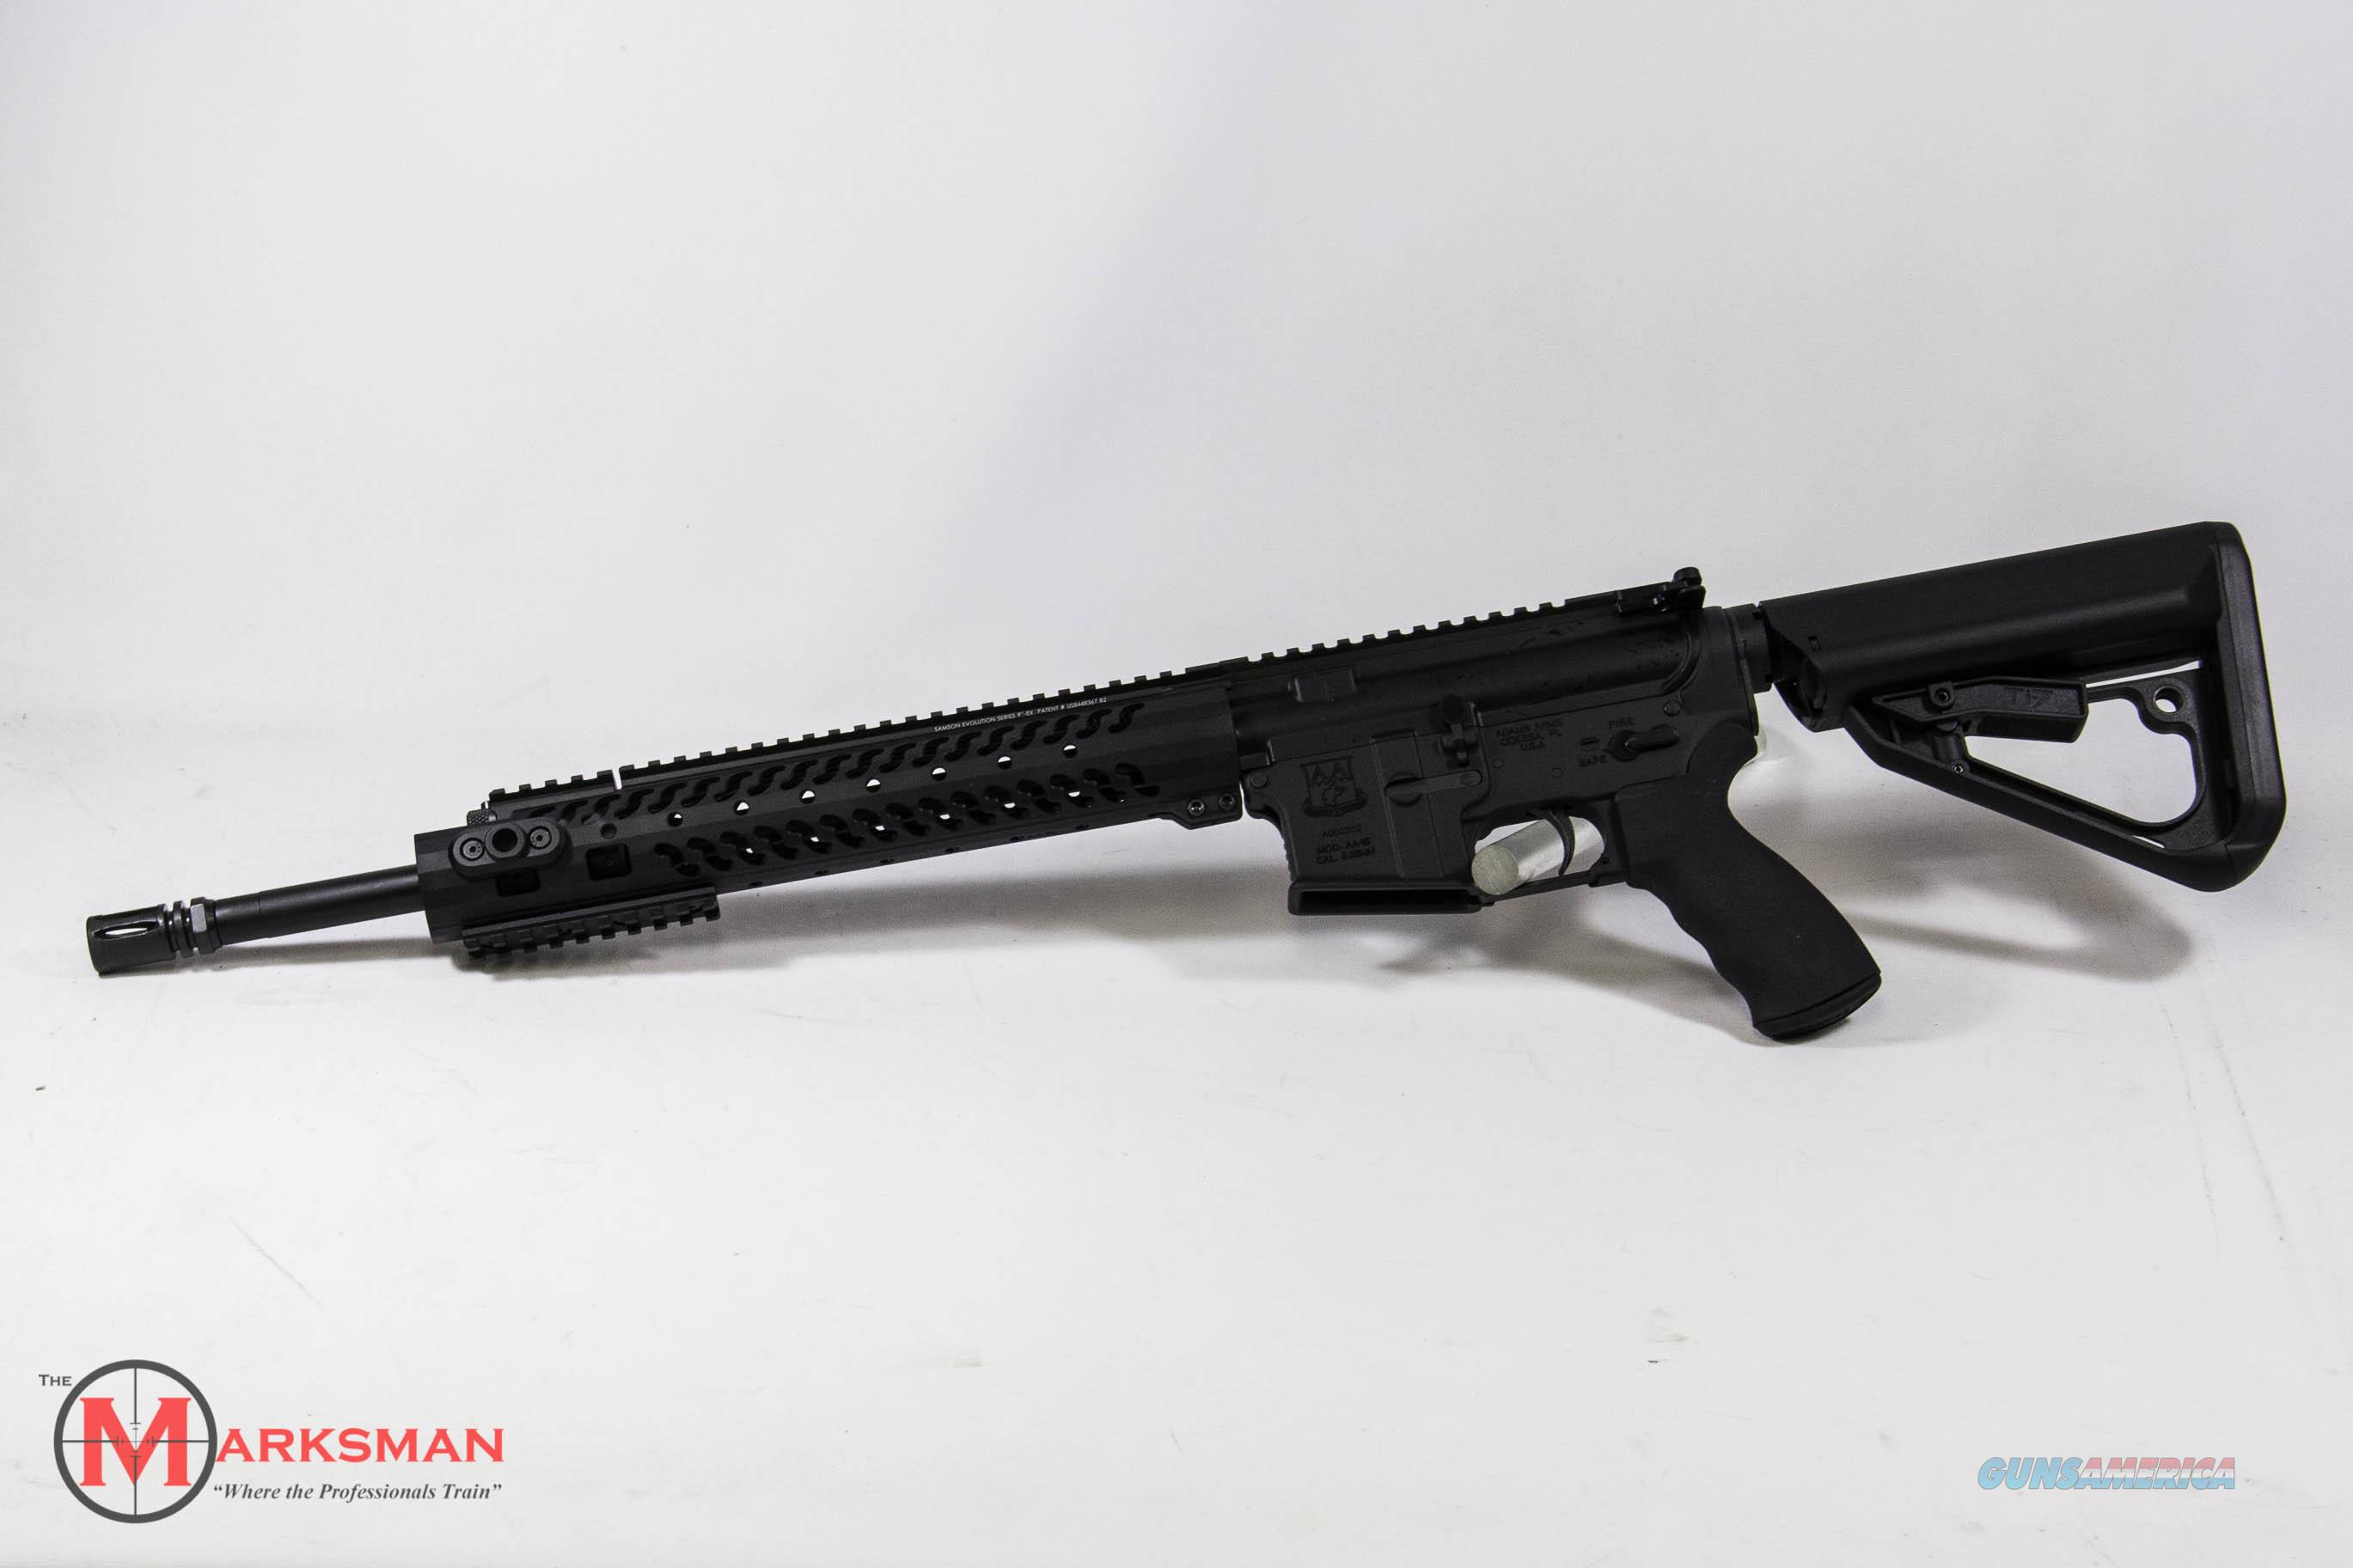 Adams Arms Mid Tactical Evo, 5.56mm NATO NEW  Guns > Rifles > AR-15 Rifles - Small Manufacturers > Complete Rifle